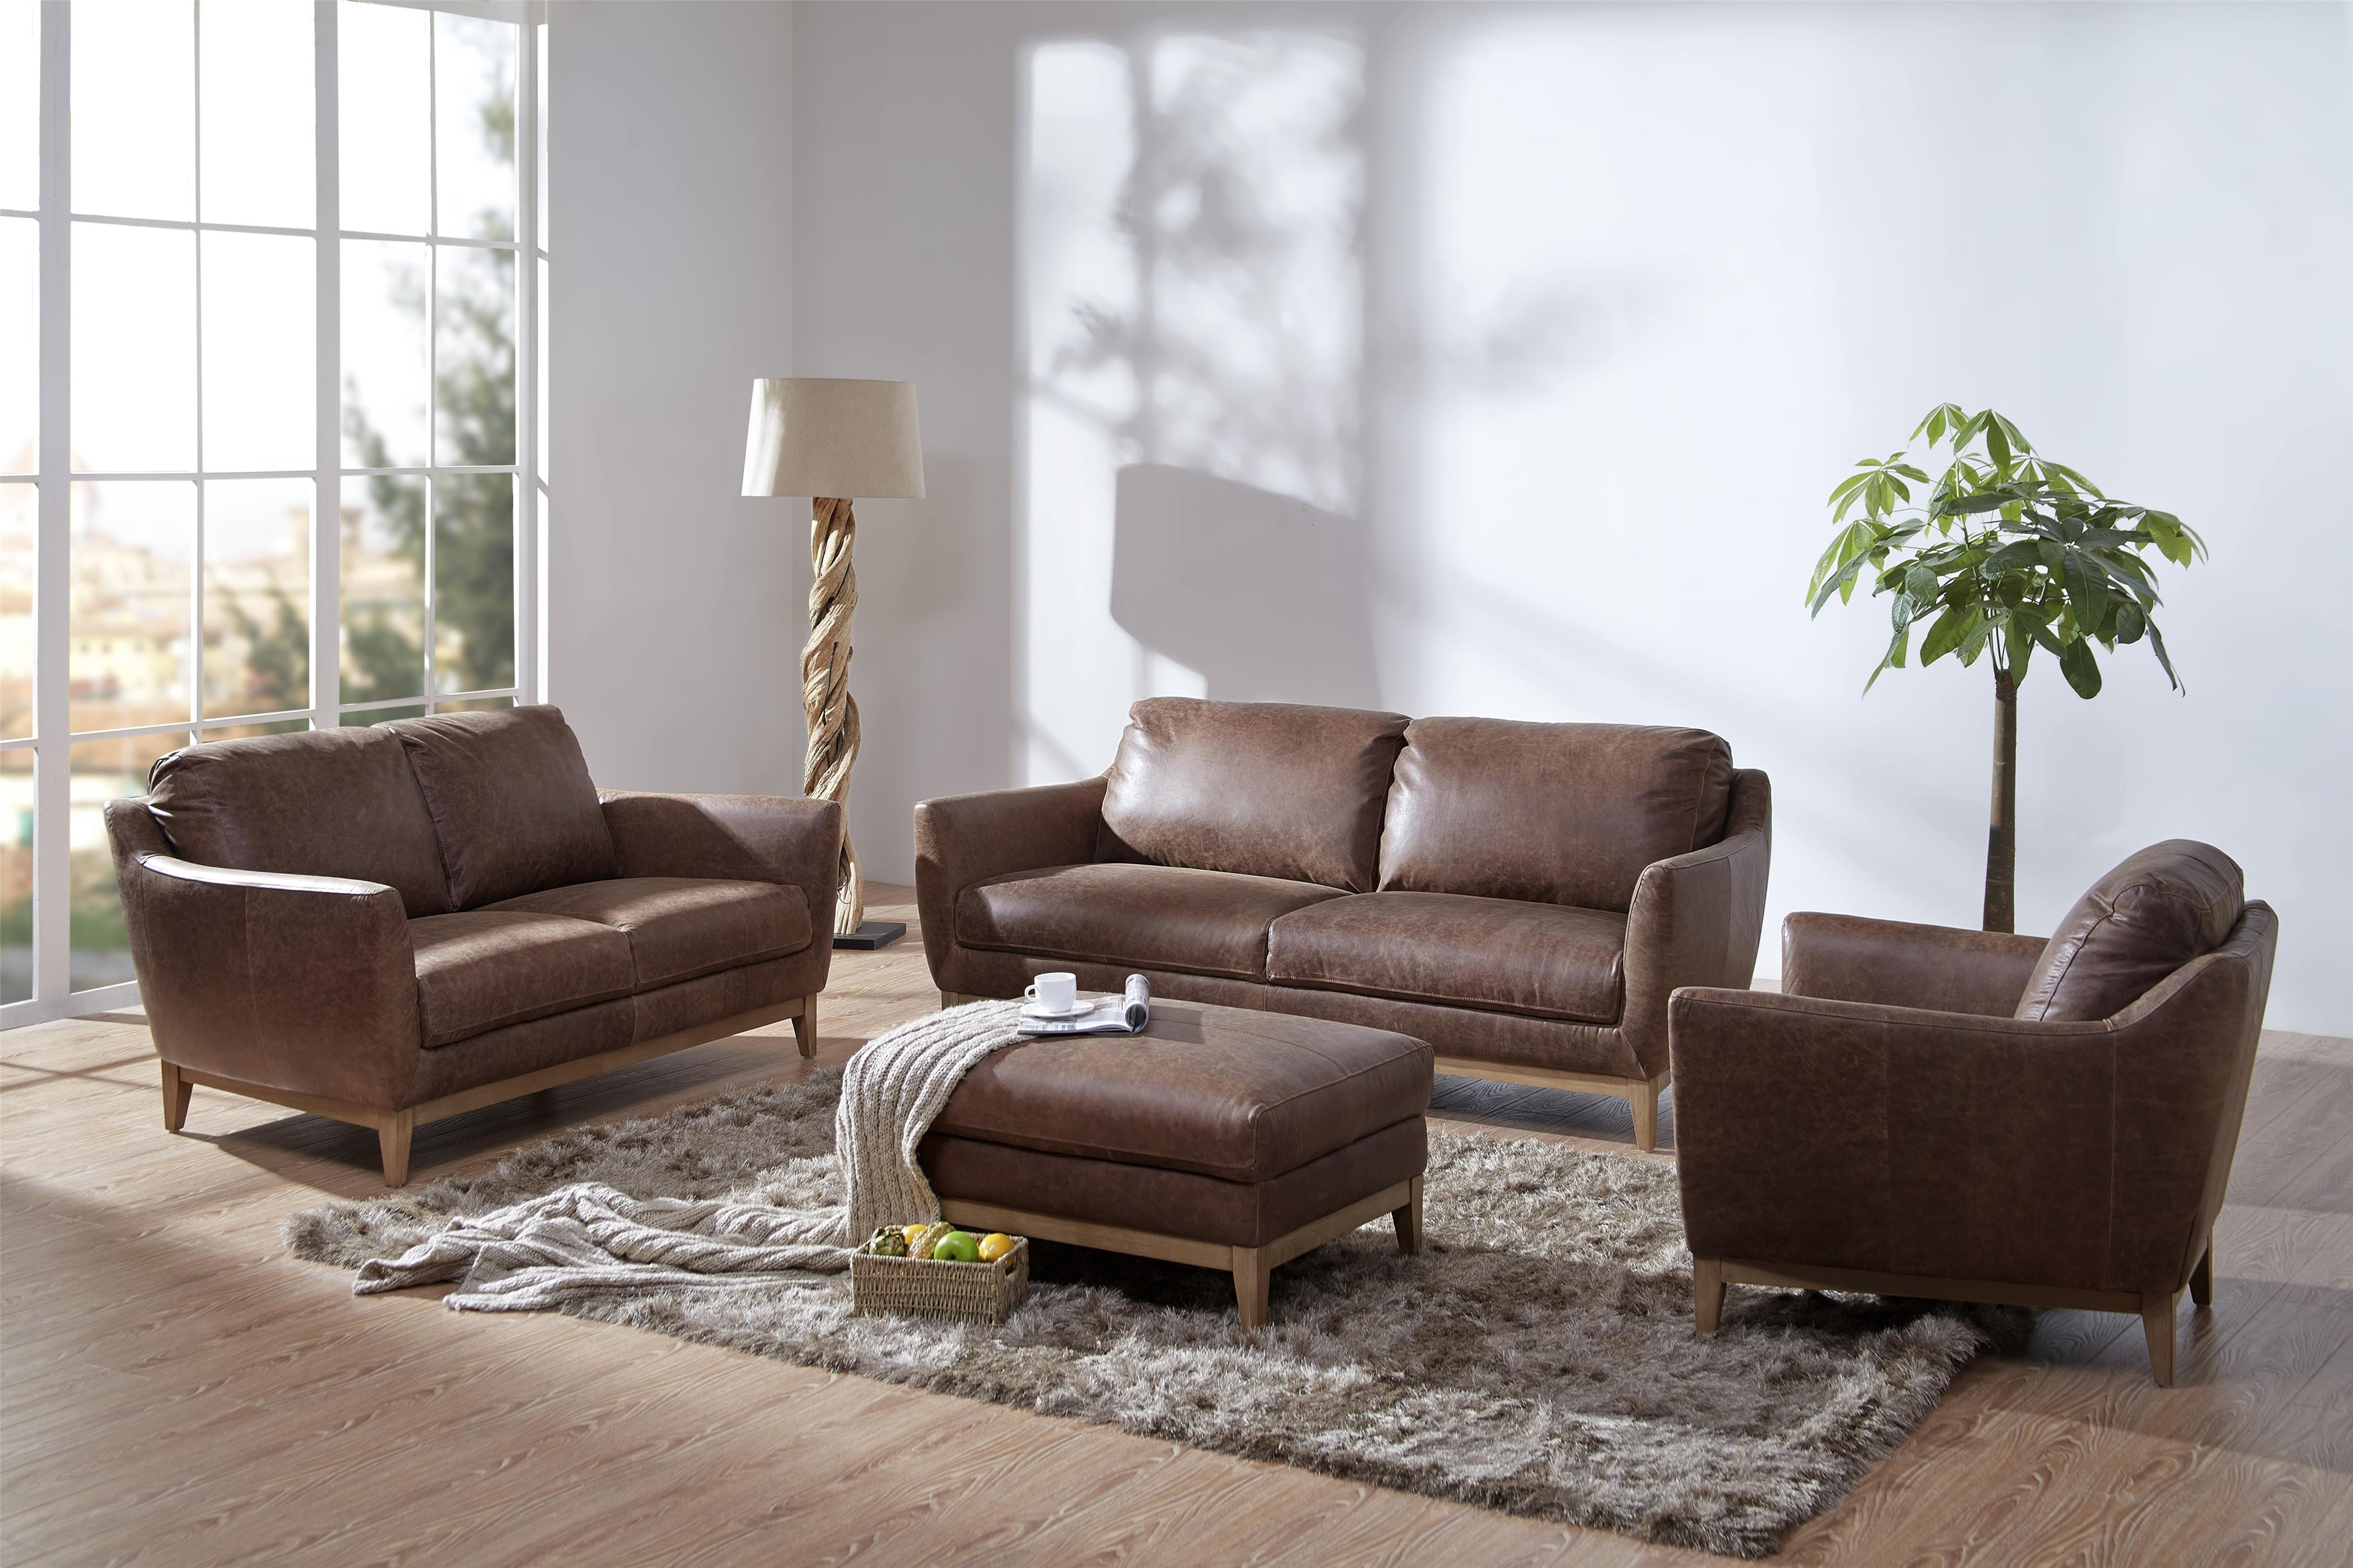 Kuka Home Baker Loveseat with Splayed Legs Wilson s Furniture